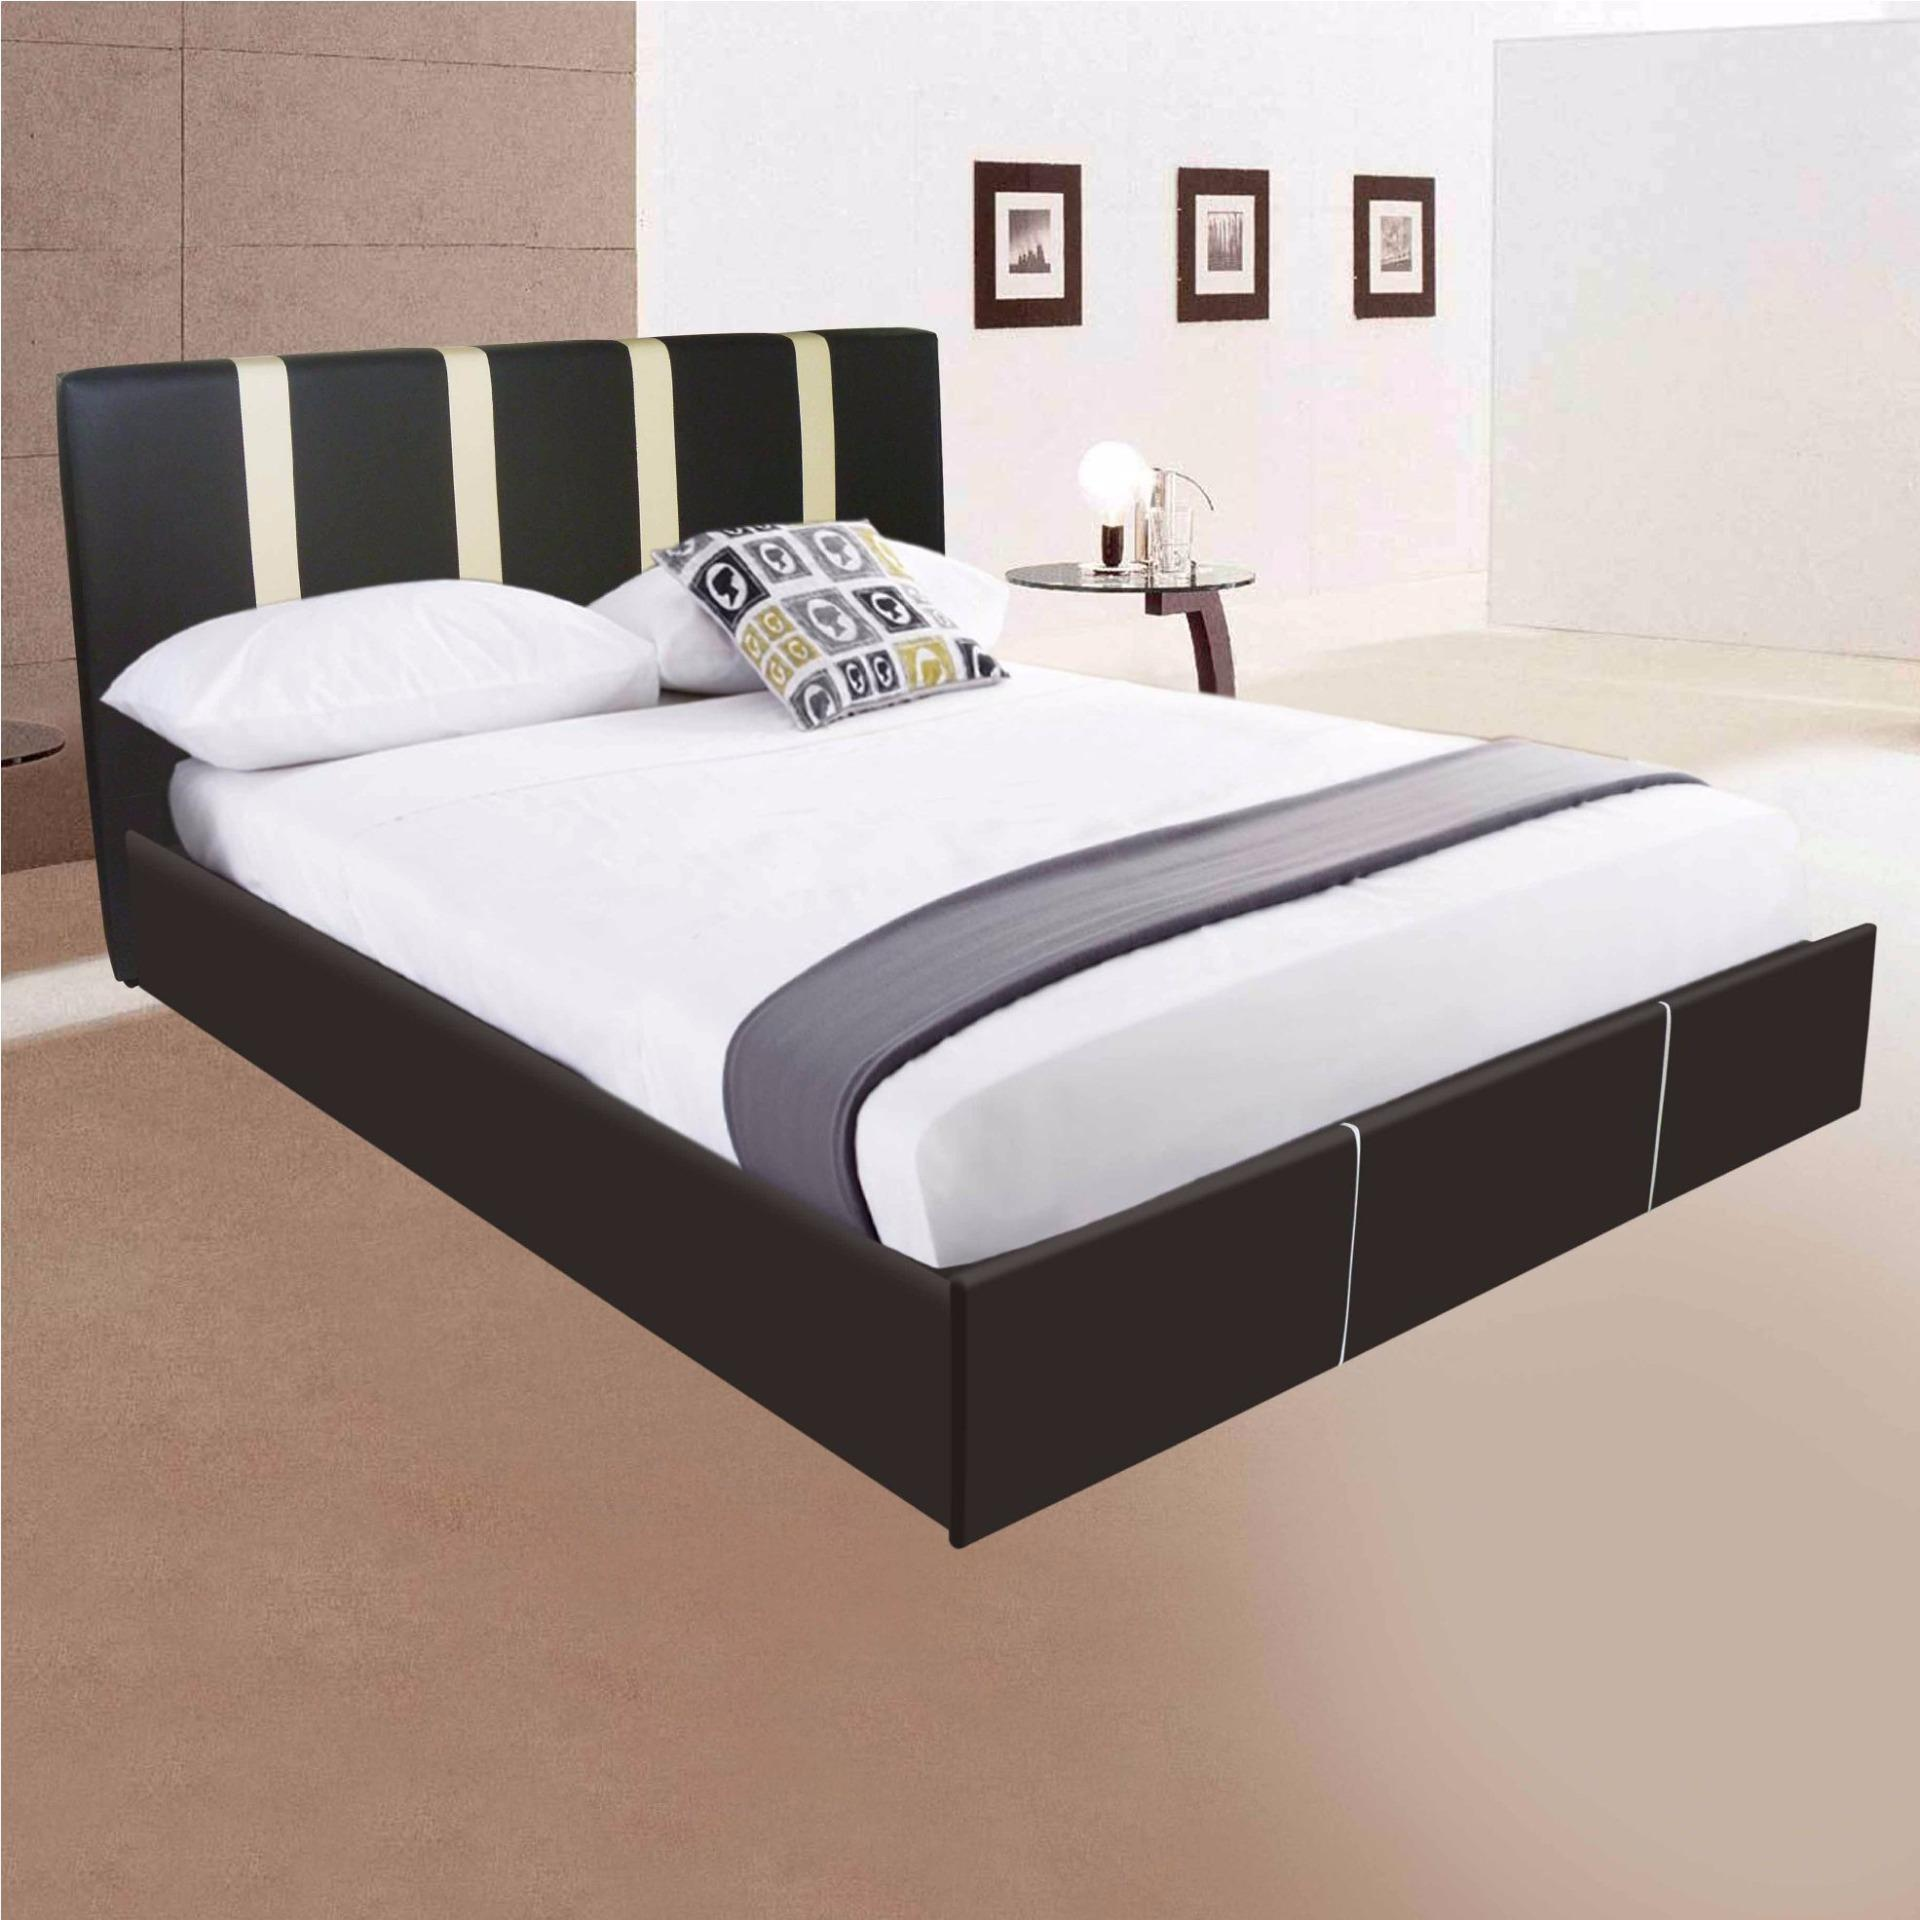 tailee furniture vinc queen size pu bed frame wenge